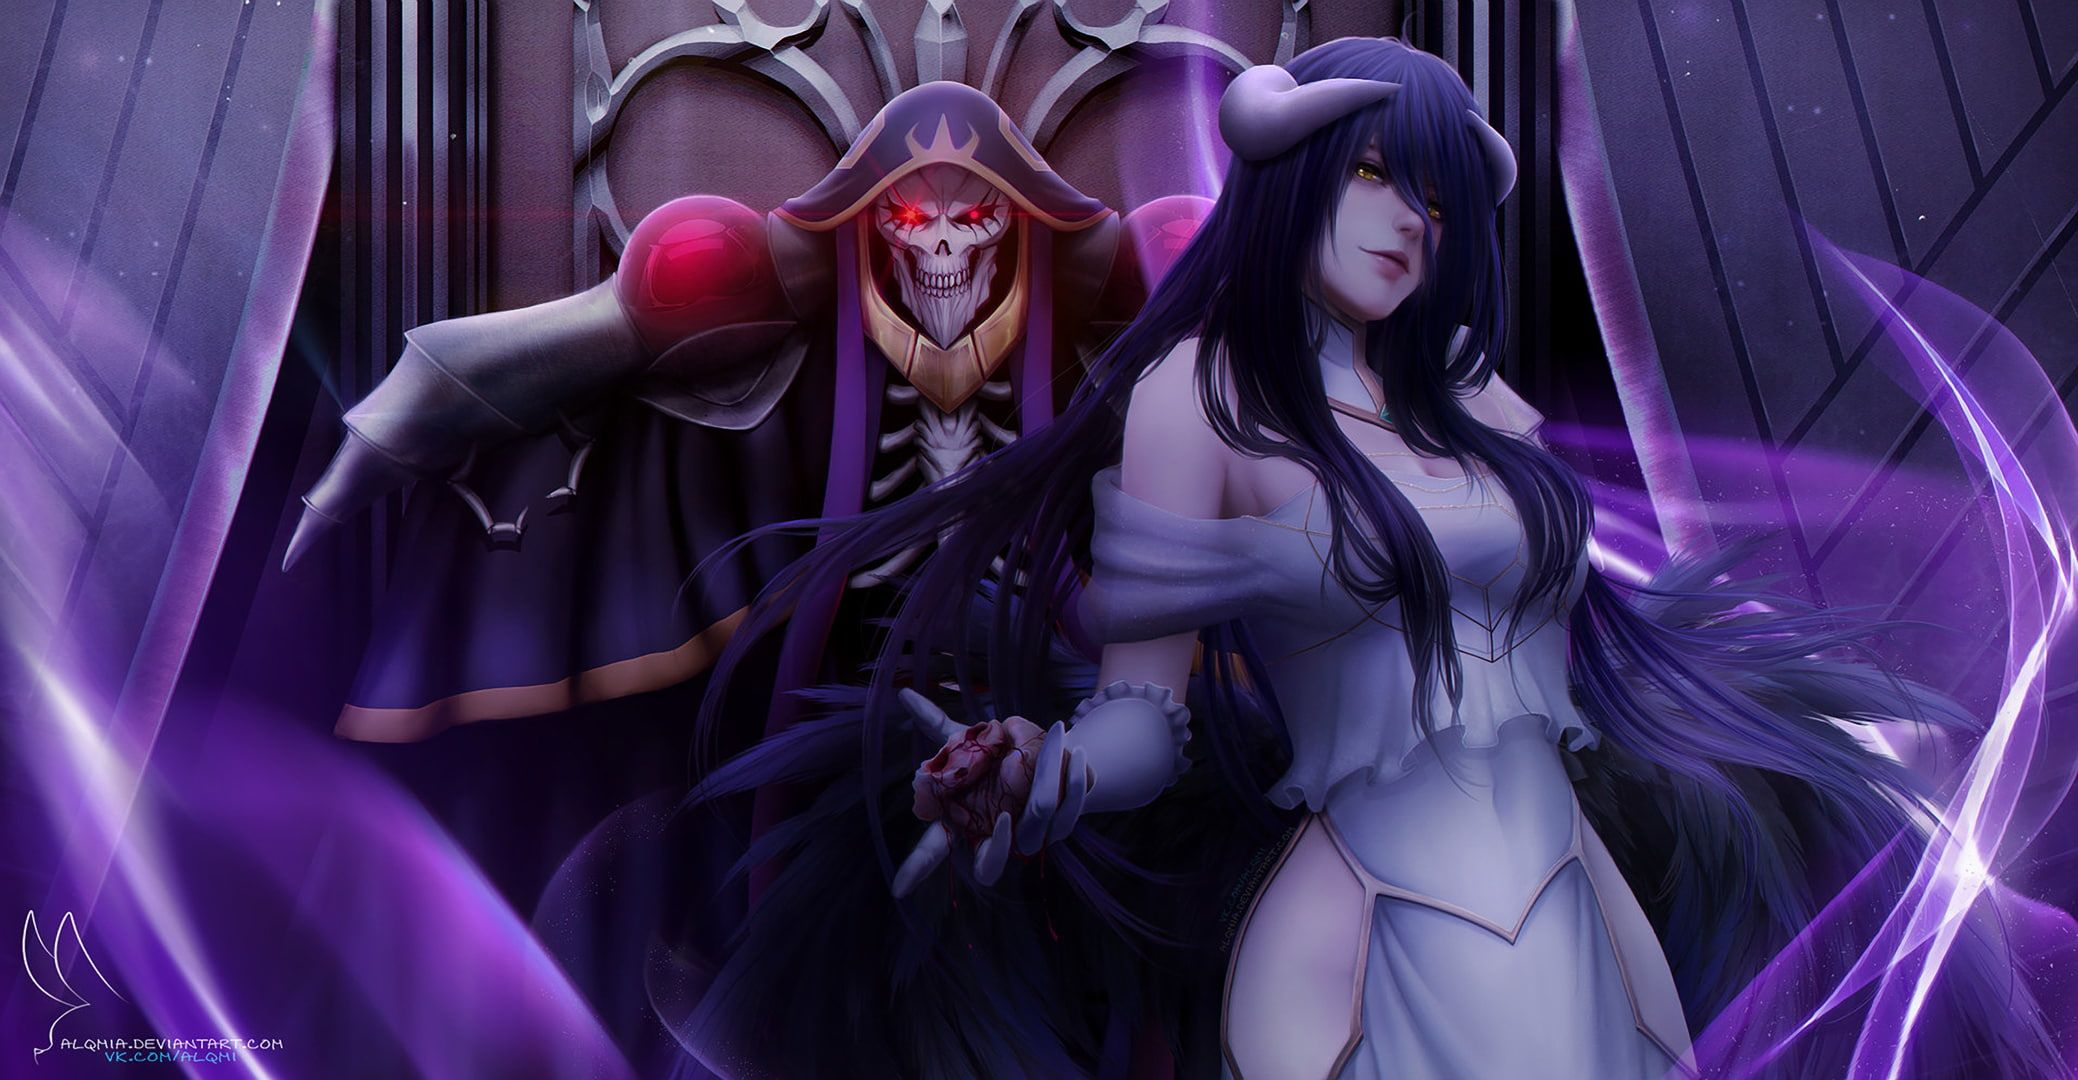 Overlord Season 4 Release Date, Plot, Manga Ainz will have Trouble leading the Sorcerer Kingdom